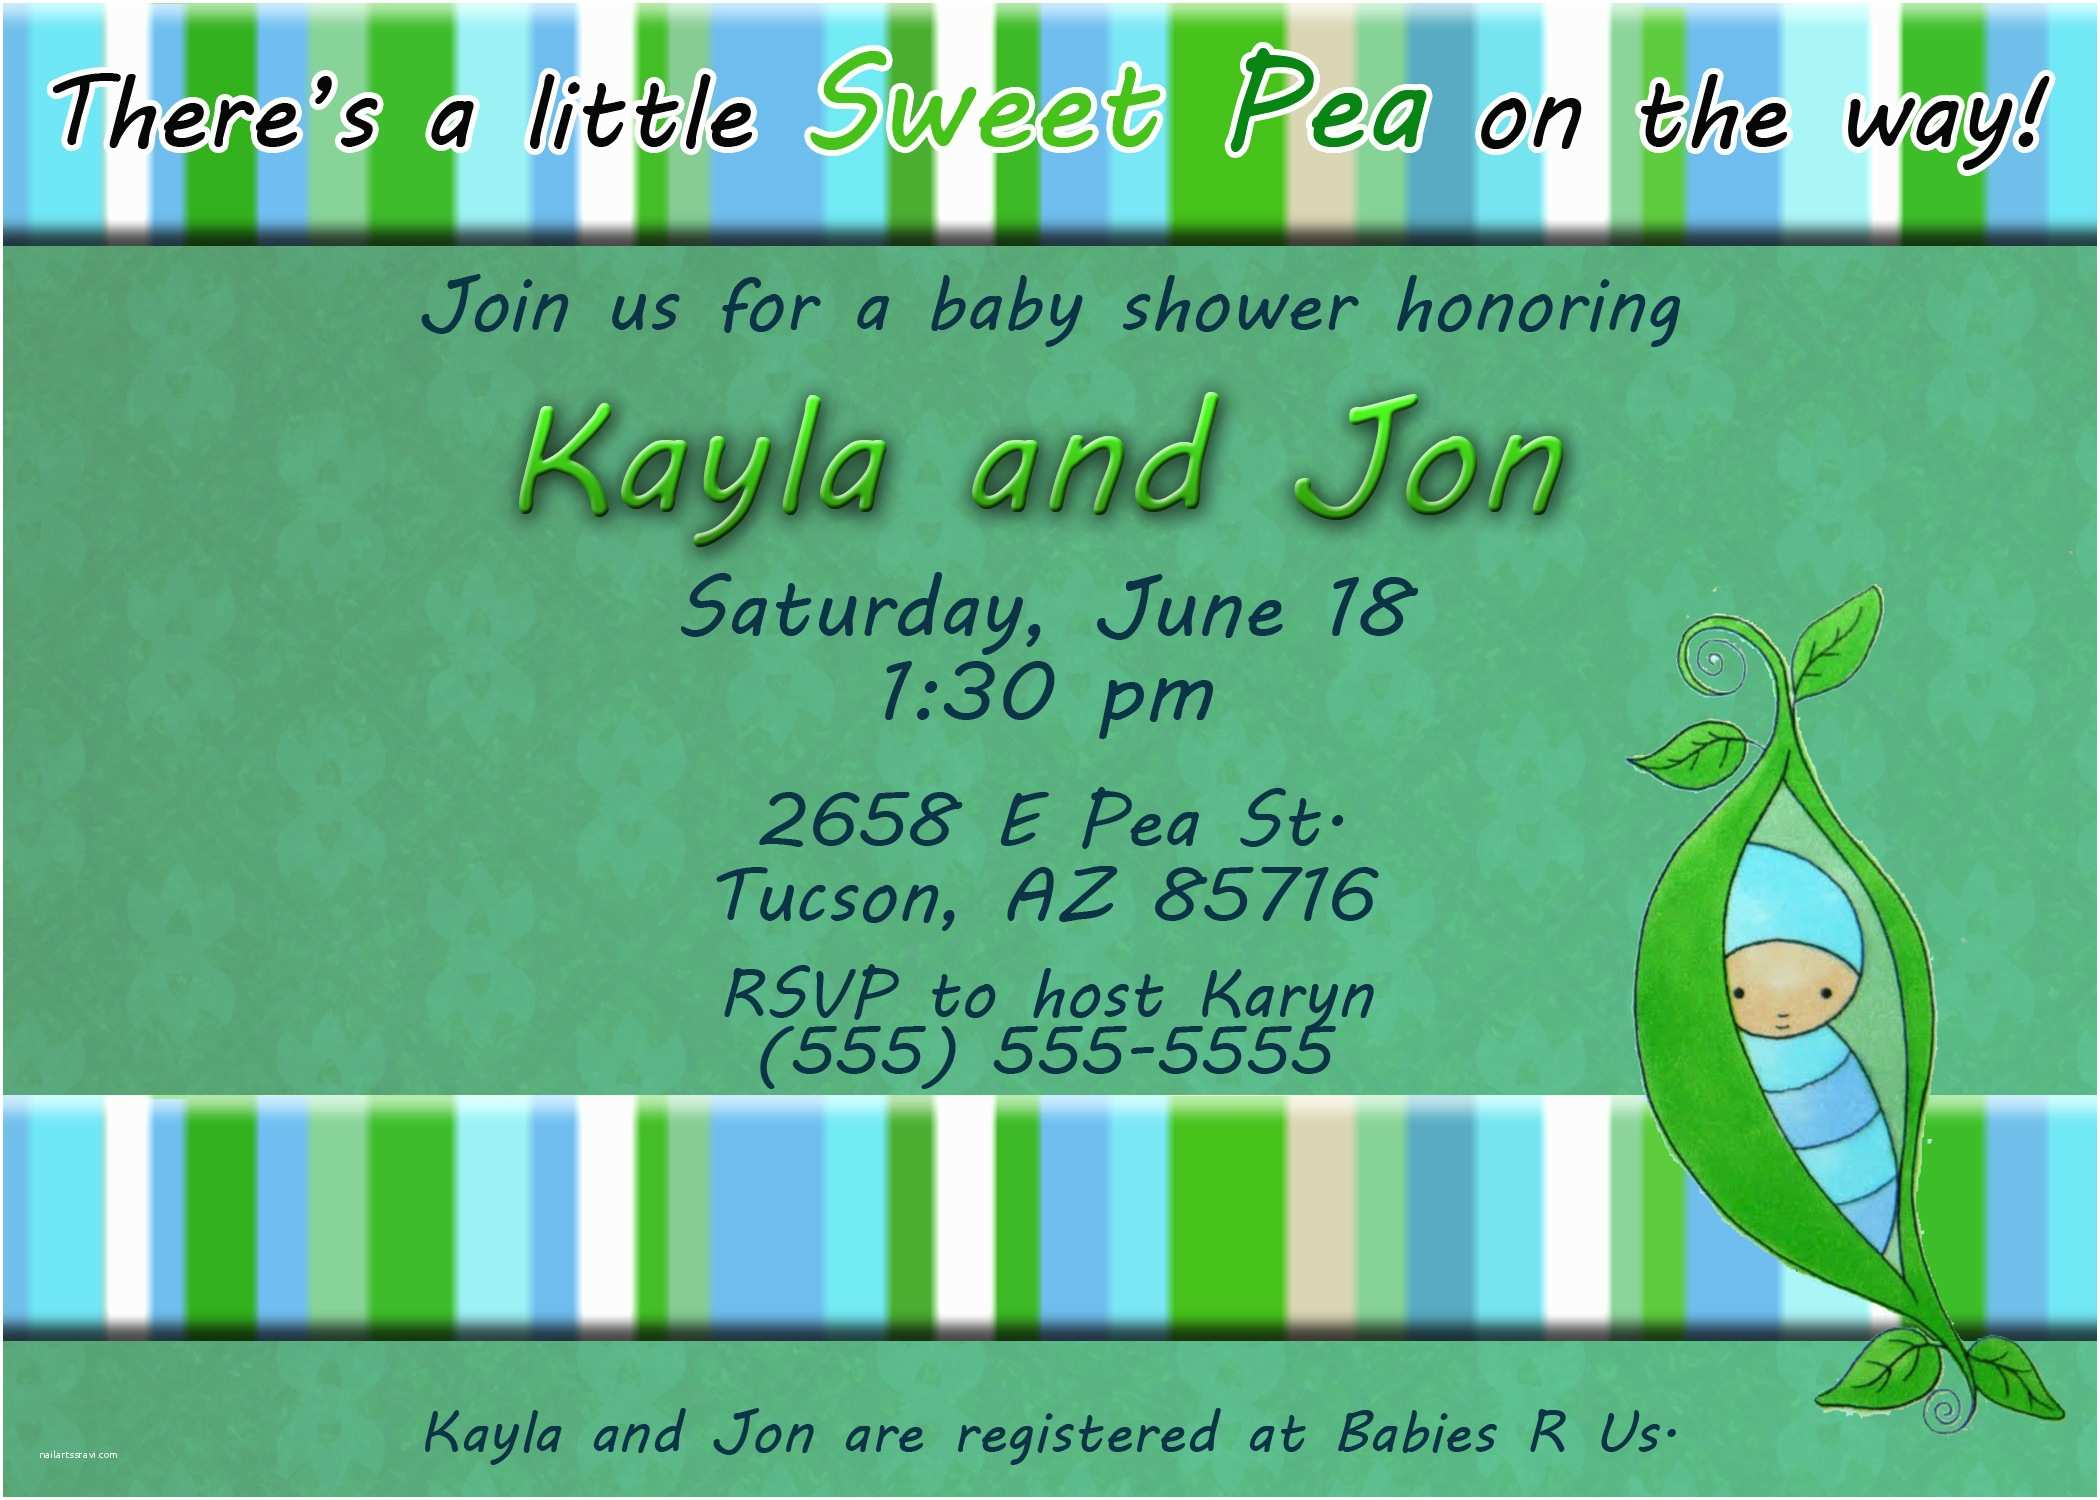 Staples Baby Shower Invitations Baby Shower Invitations Staples Giraffe Image